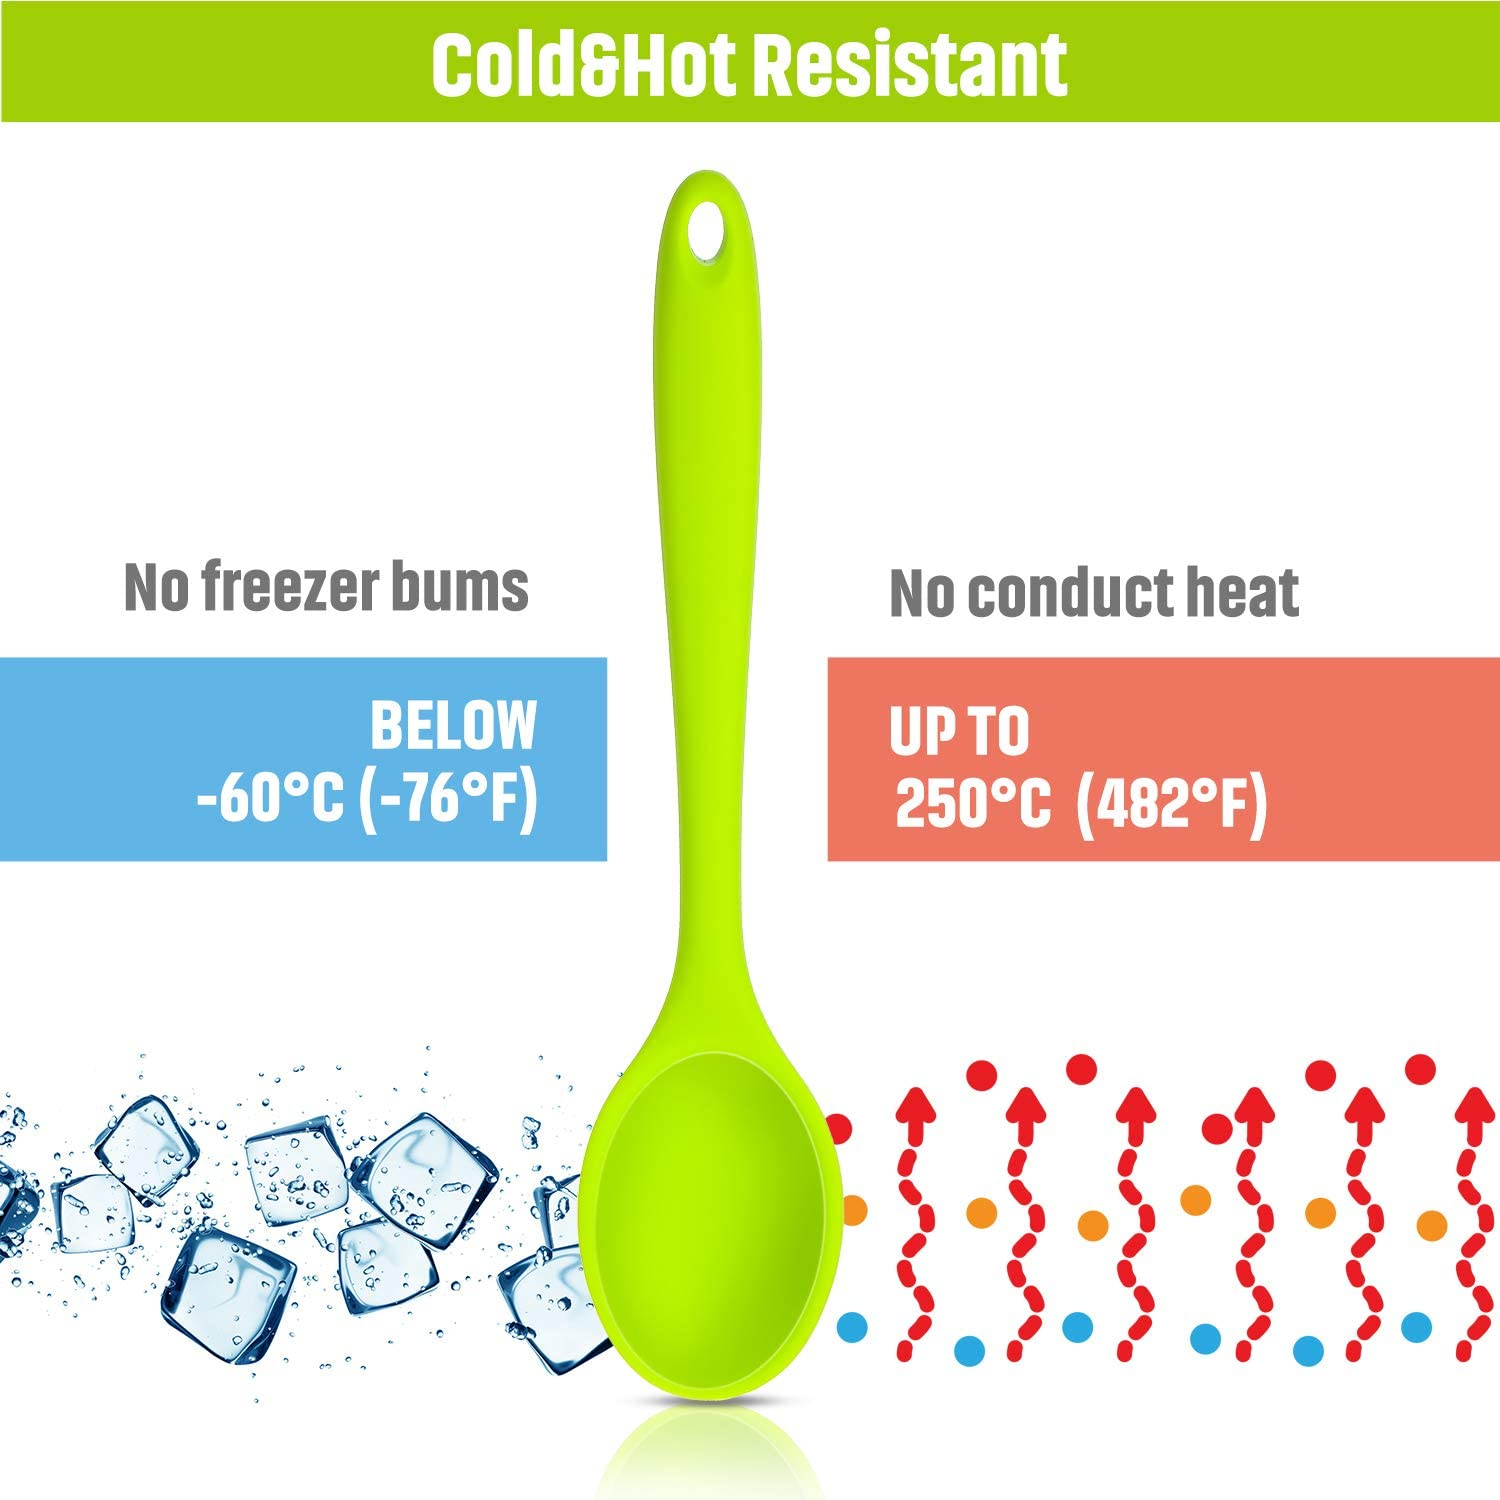 4 Pieces Small Multicolored Silicone Spoons Nonstick Kitchen Spoon Silicone Serving Spoon Stirring Spoon for Kitchen Cooking Baking Stirring Mixing Tools Dark Red, Green, Yellow, Blue